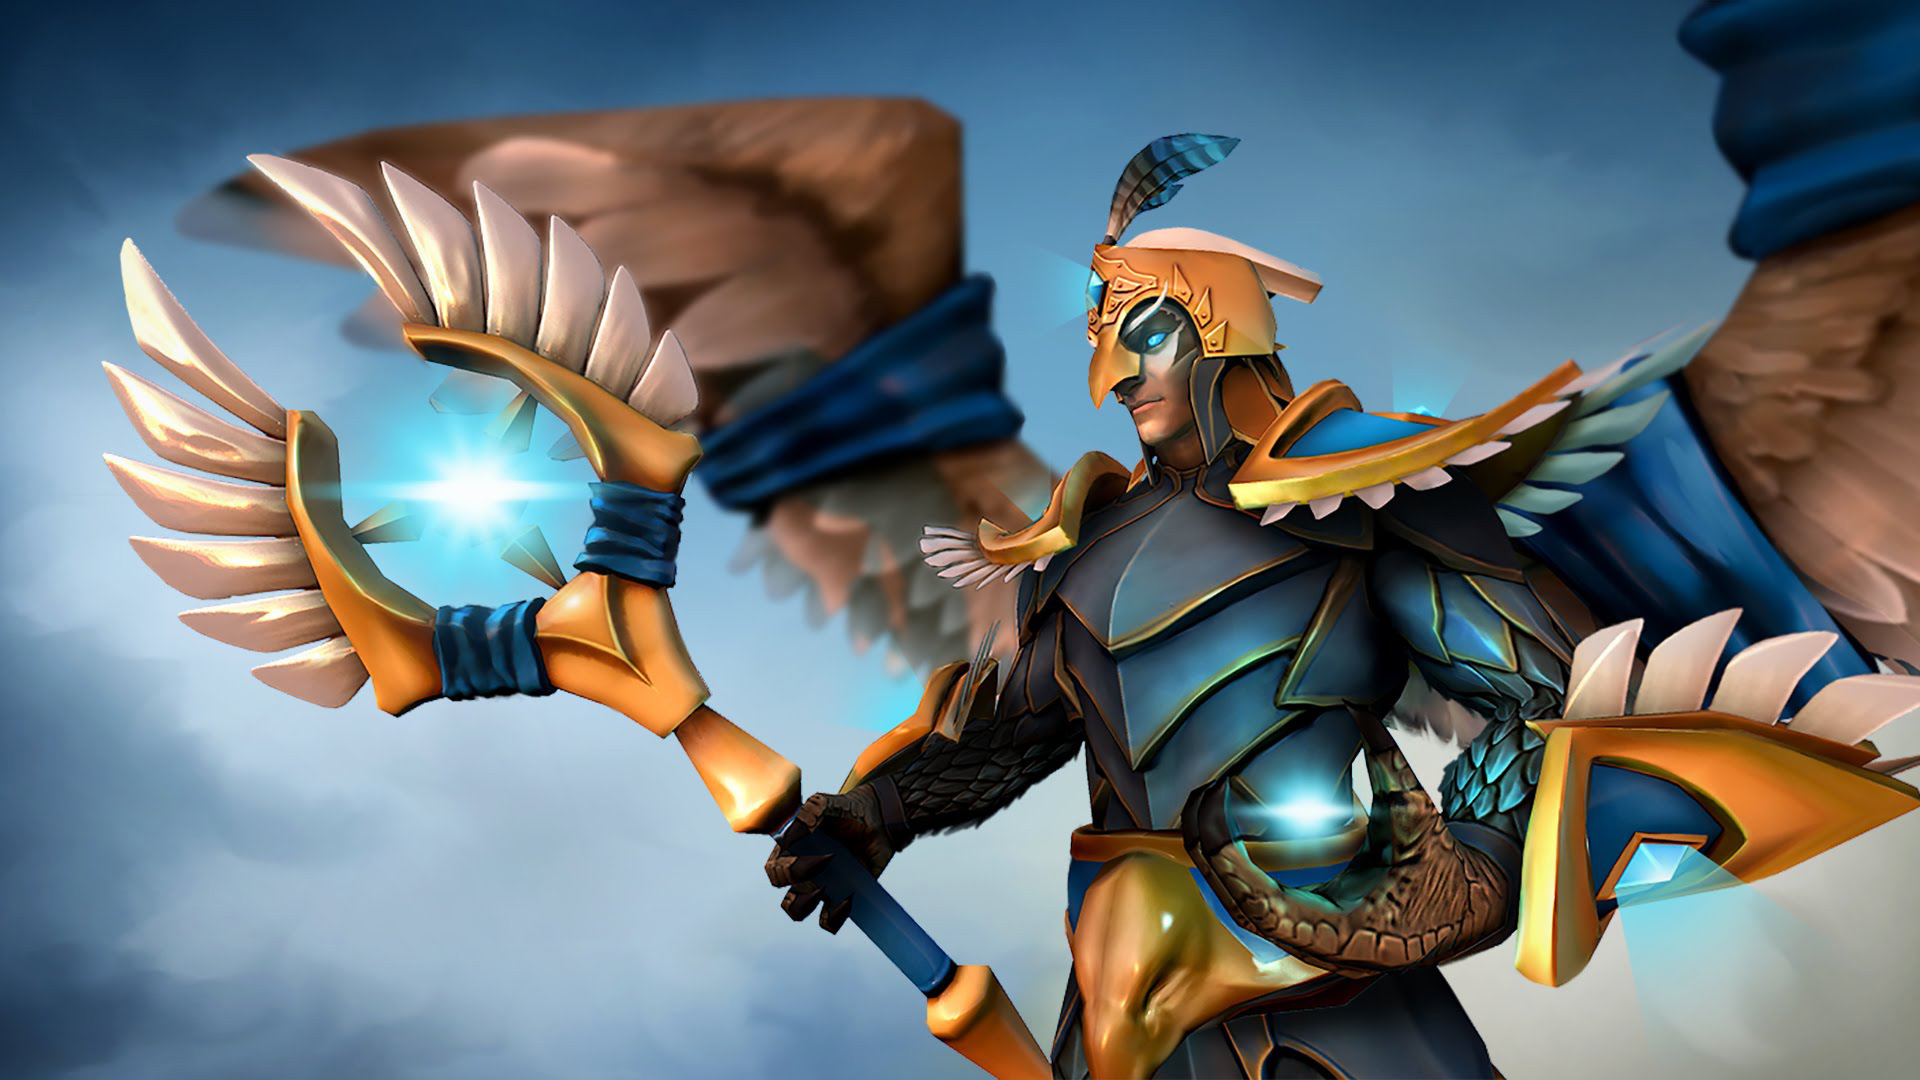 Skywrath Mage Dota 2 гайд